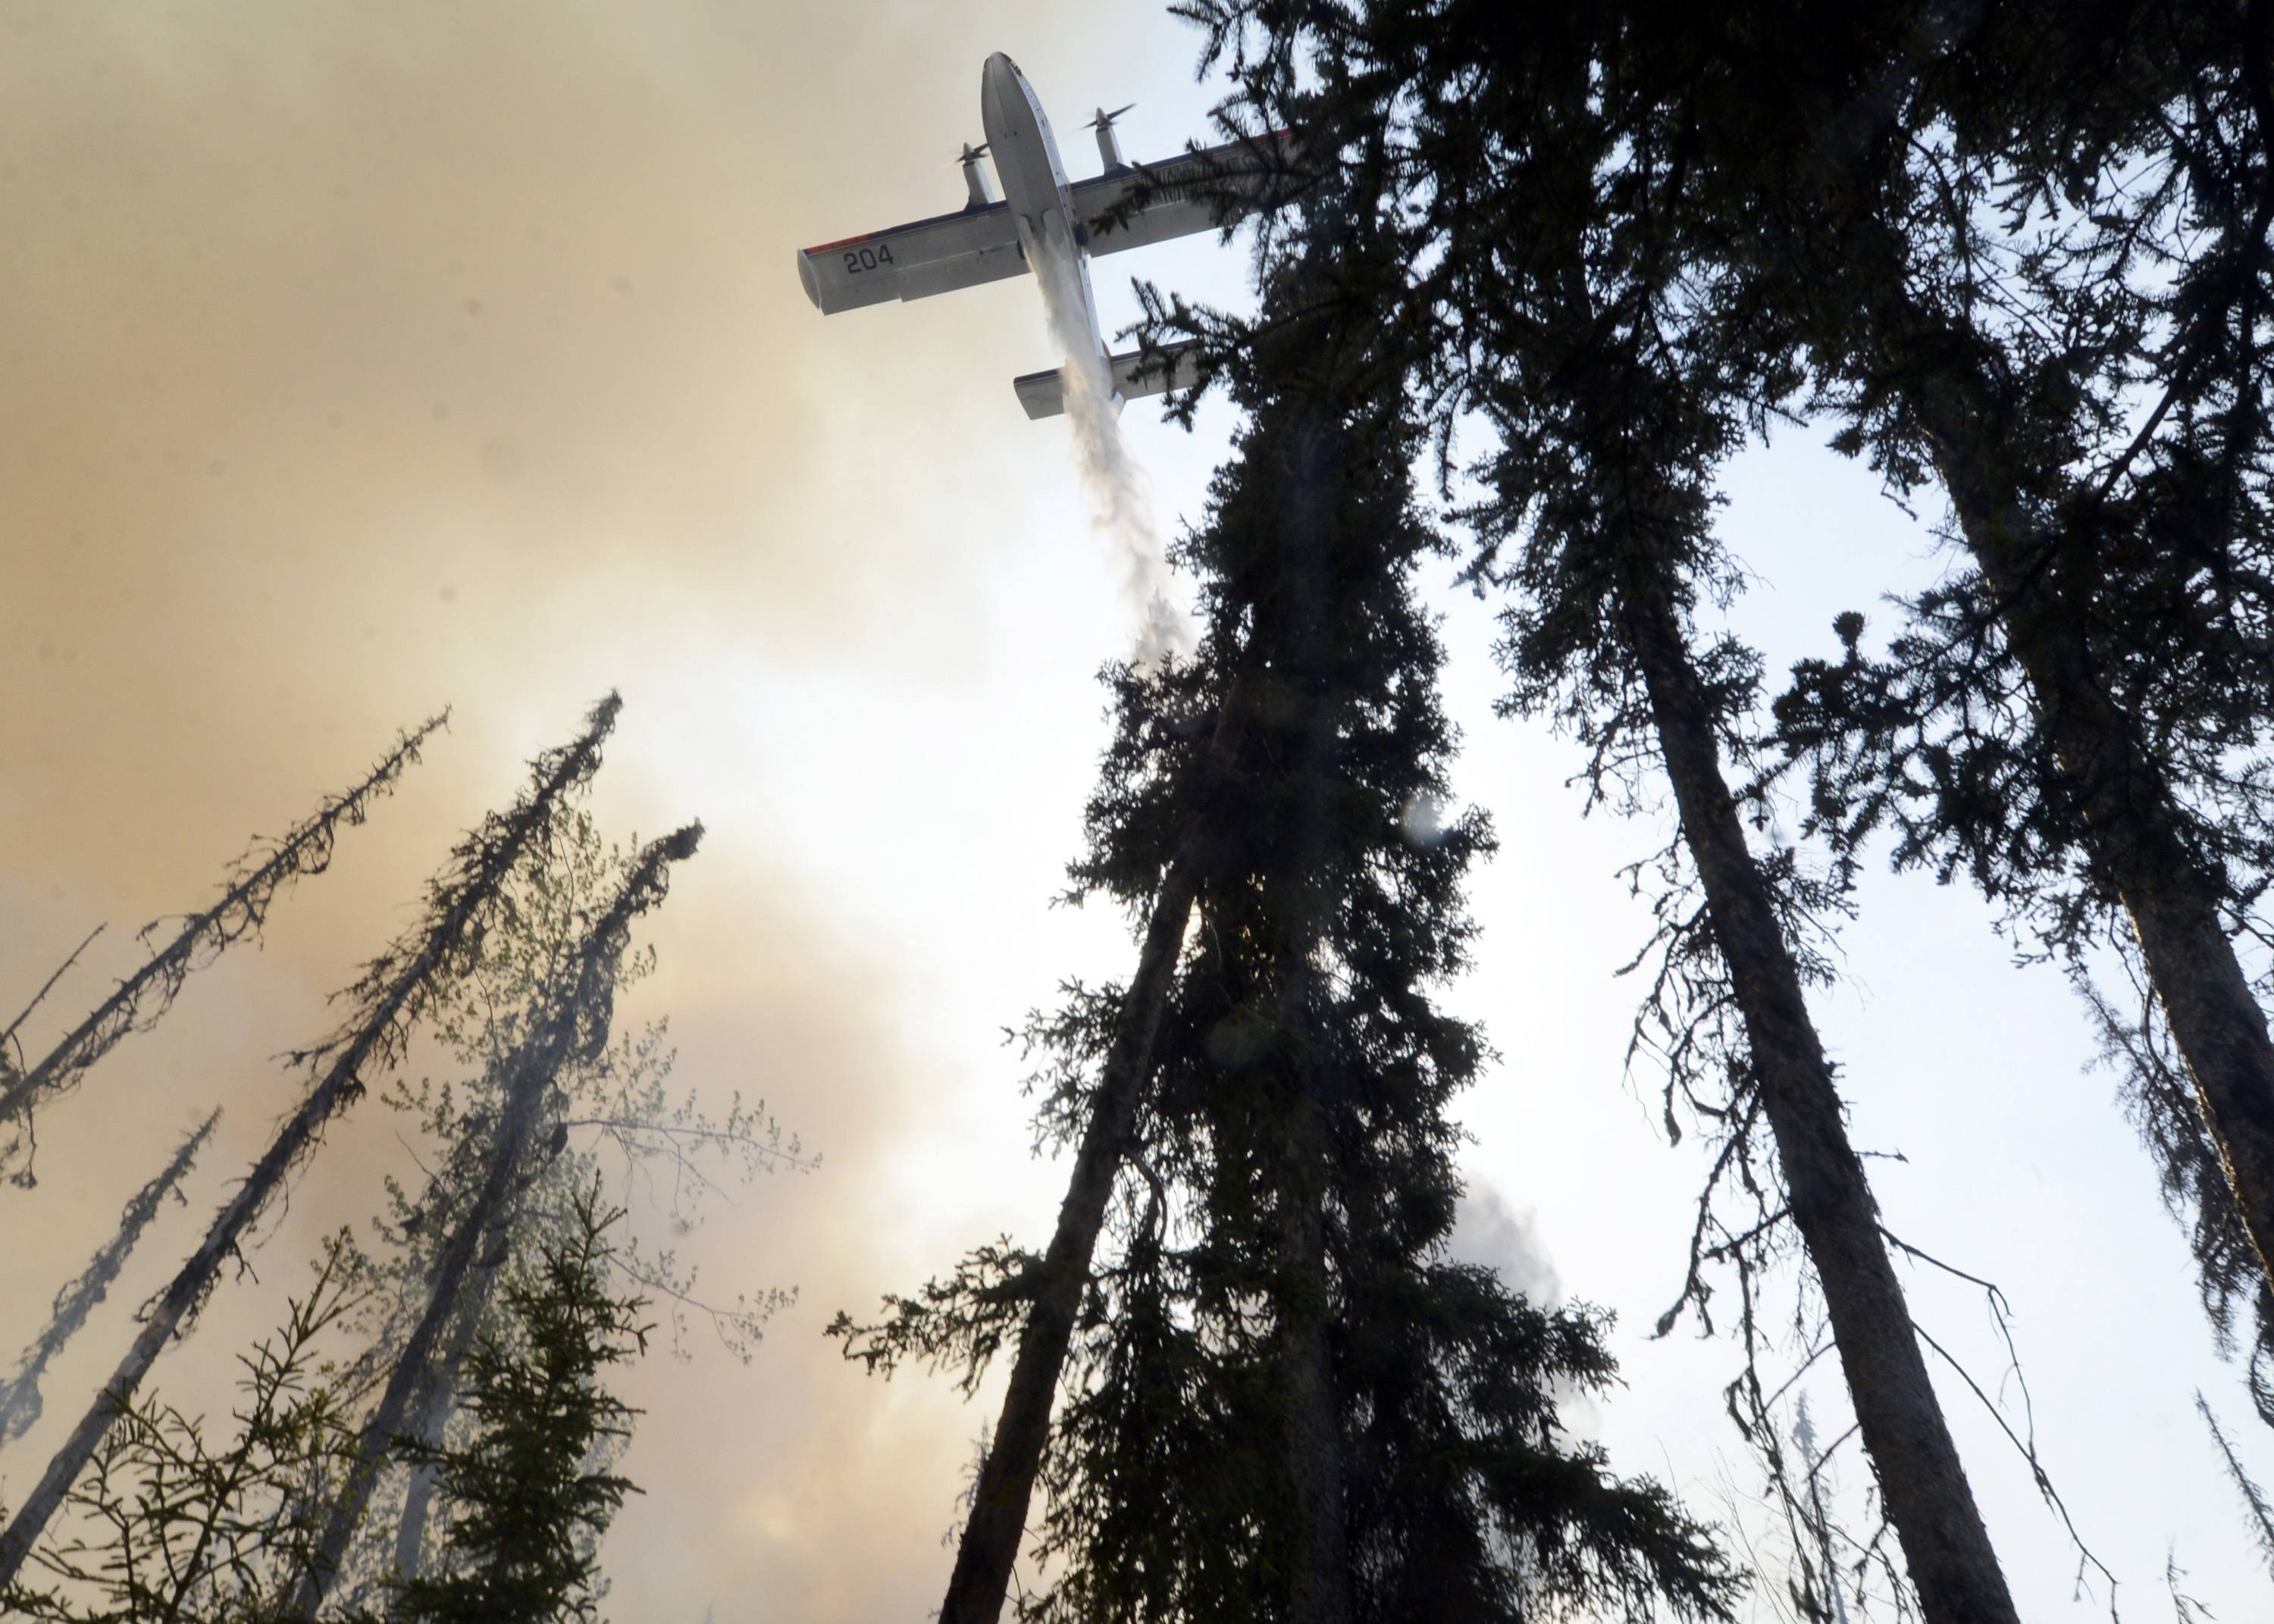 A plane sprays over a portion of a wildfire Sunday, May 25, 2014, in the Funny River community of Soldotna, Alaska. A massive wildfire pushed by wind in Alaska's Kenai Peninsula south of Anchorage continued to explode in size, leading to mandatory evacuations of 1,000 structures, officials said Sunday.